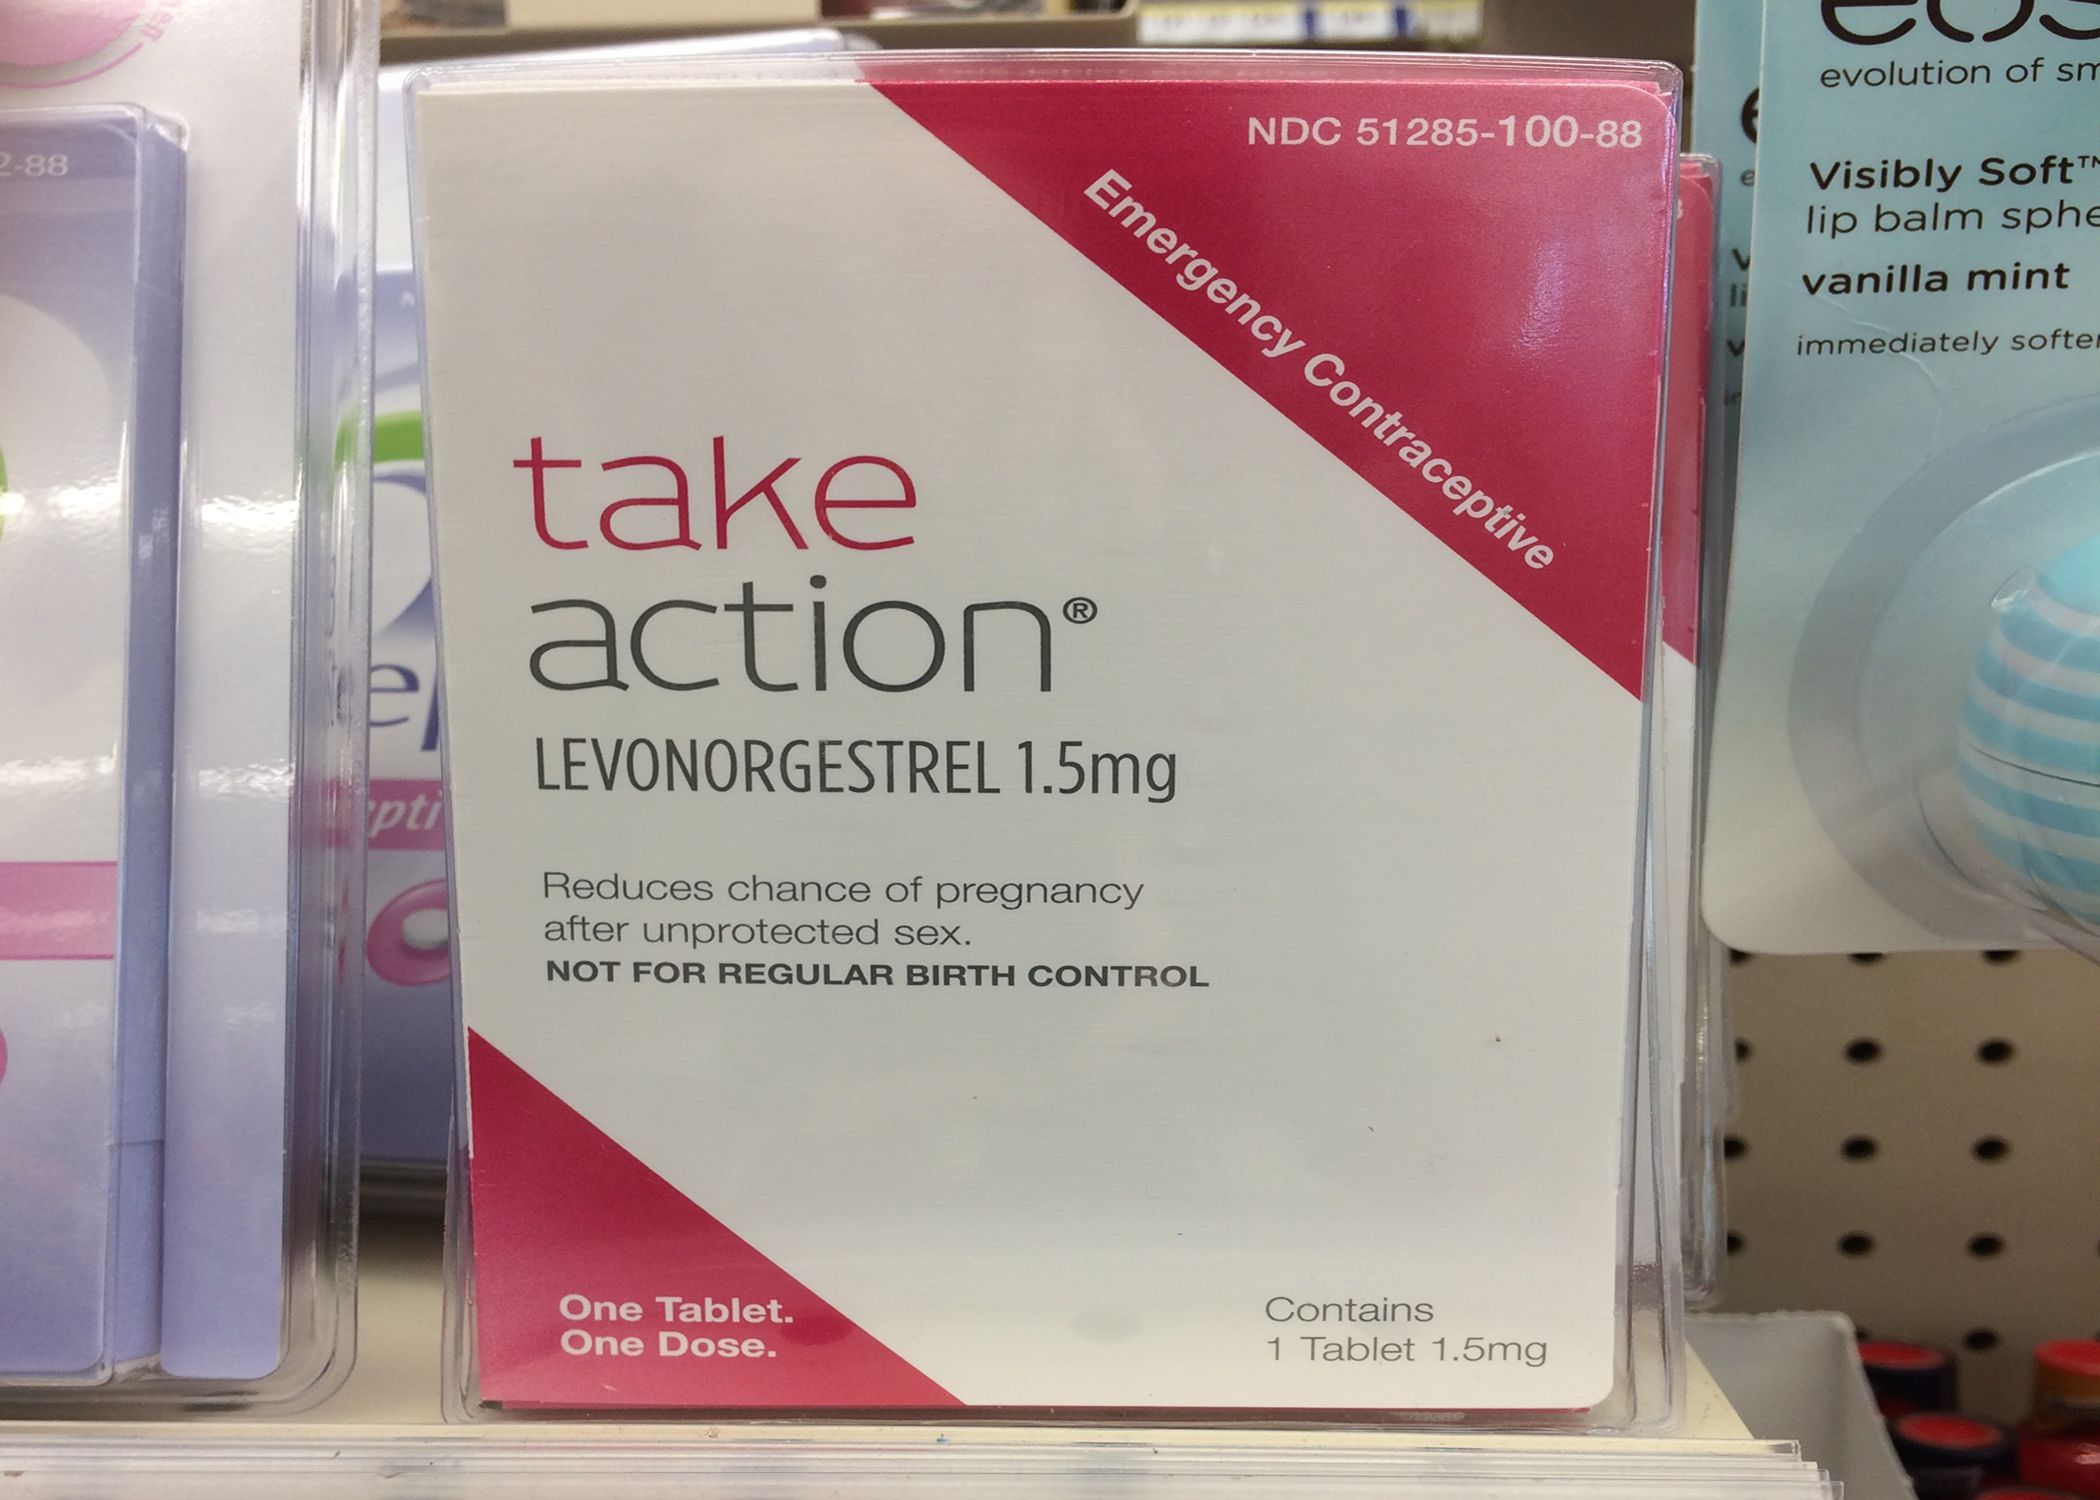 The Take Action Morning After Pill